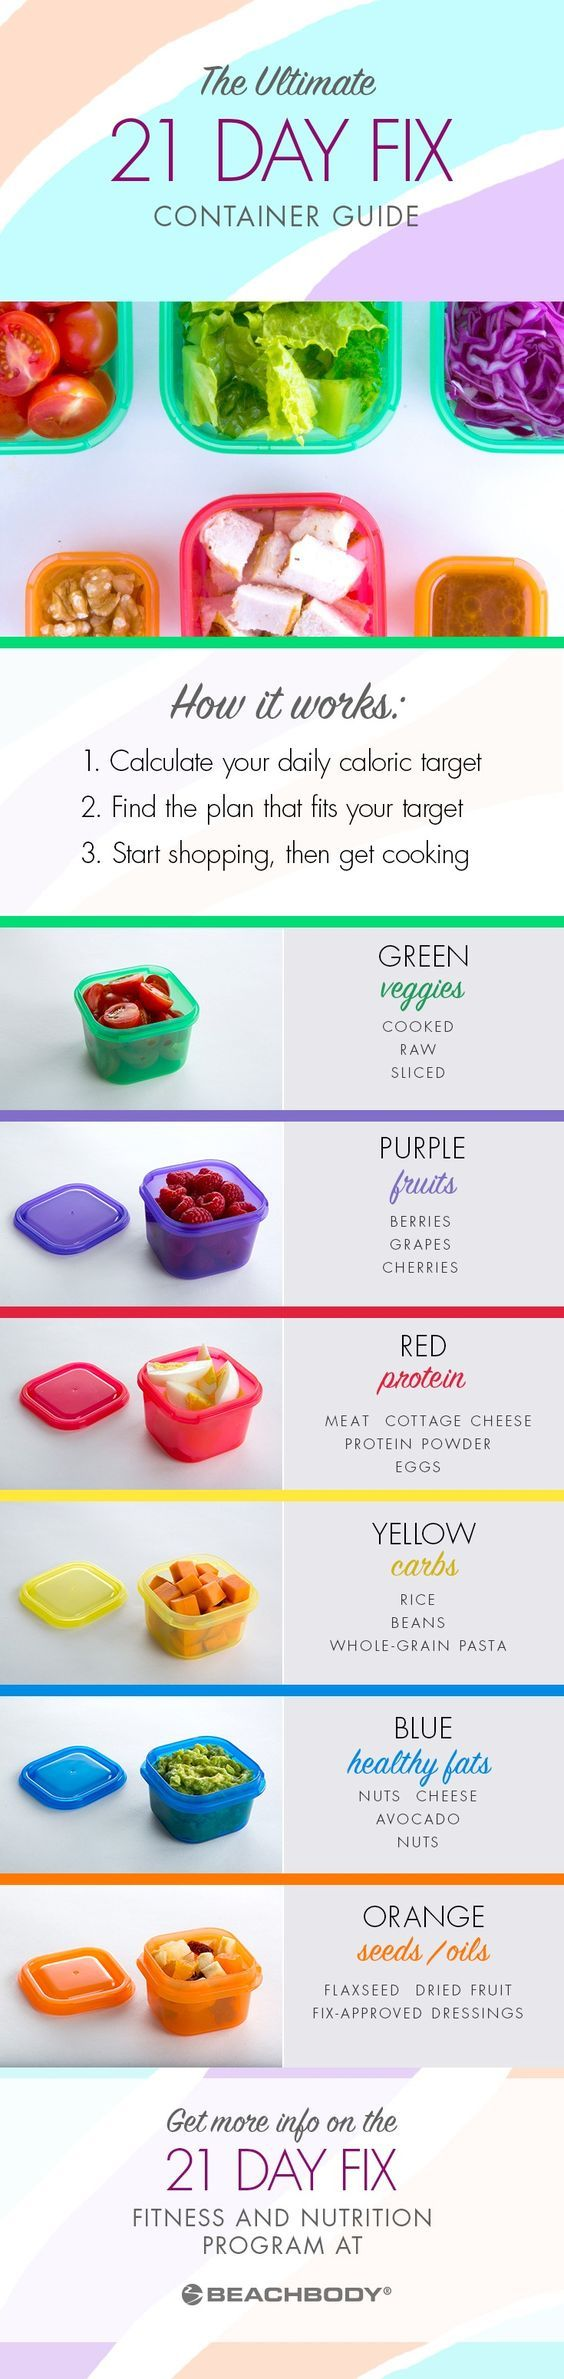 The 21 Day Fix containers can help you build a solid foundation for eating clean by taking the guesswork out of what to eat and how much. Look and feel your best in 21 days!